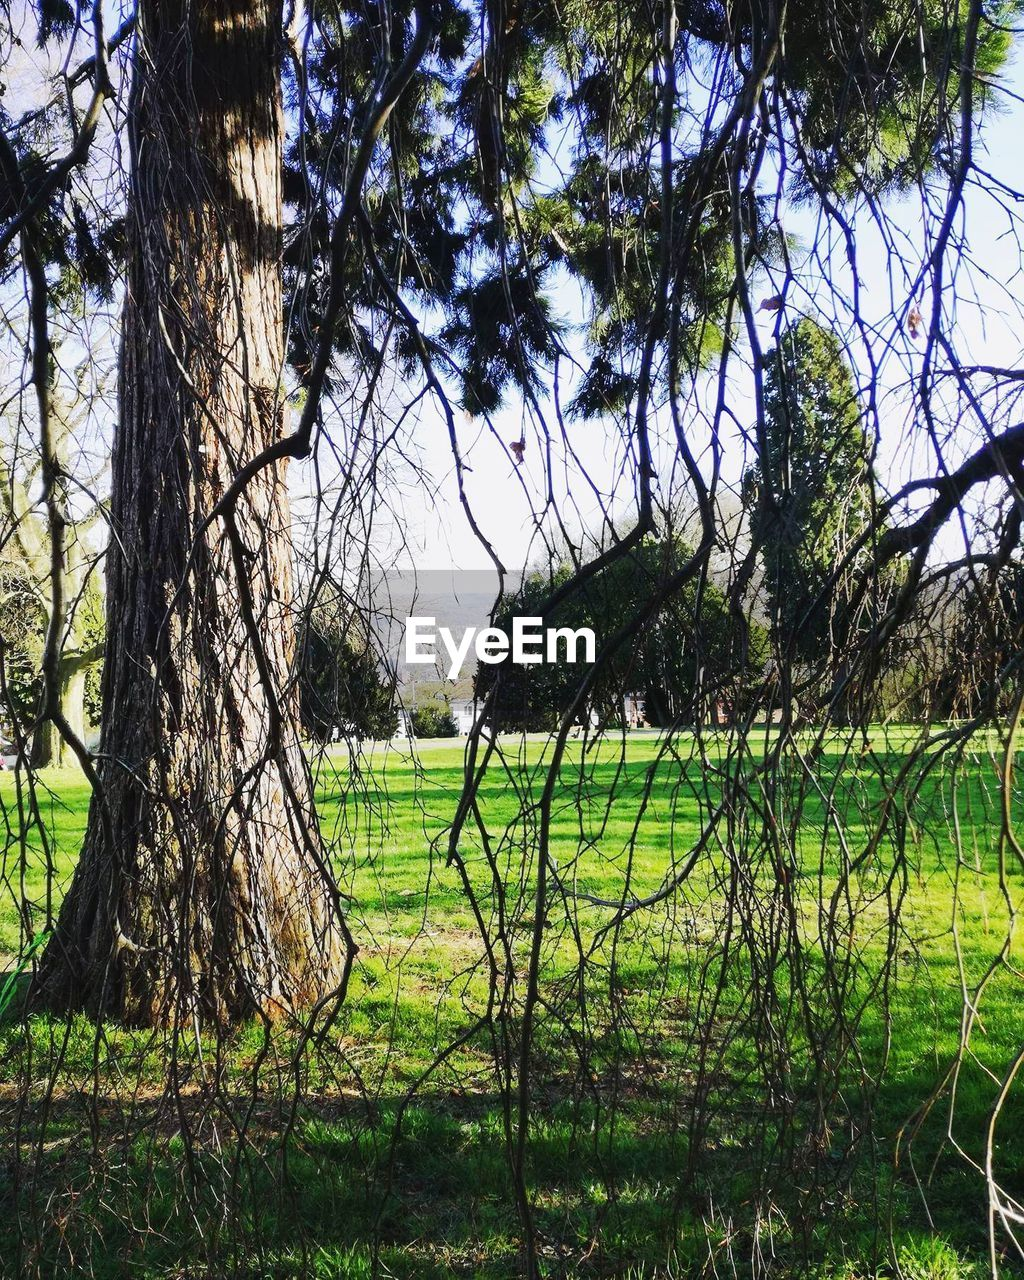 grass, tree, field, nature, tranquility, growth, beauty in nature, landscape, tranquil scene, day, no people, outdoors, green color, scenics, tree trunk, sky